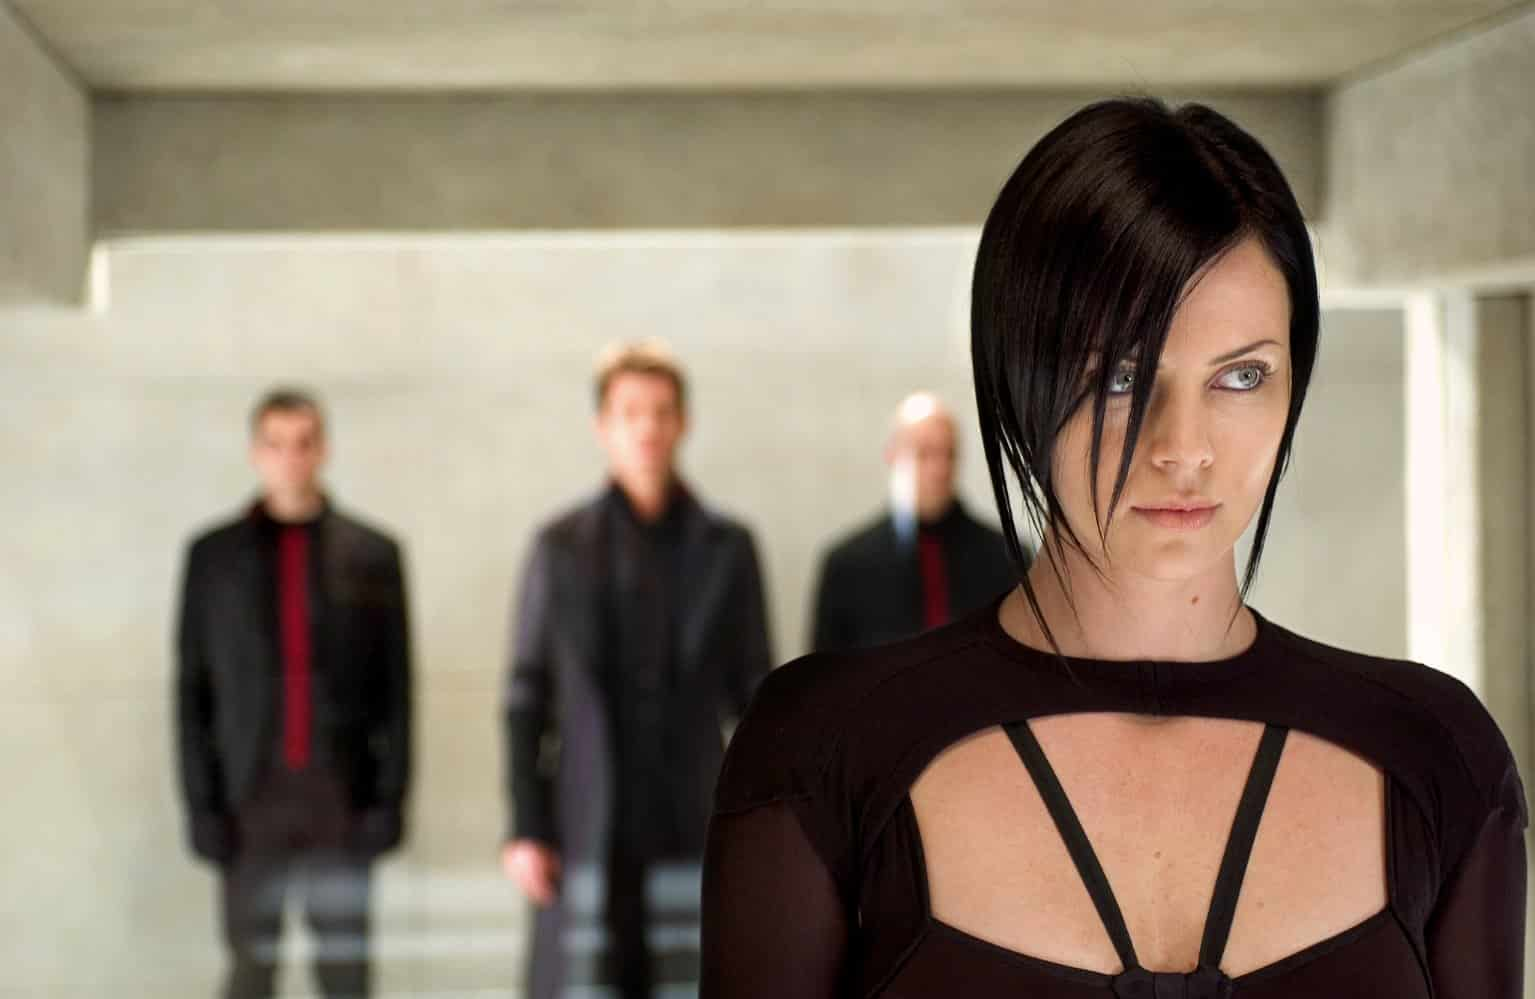 With Mad Max: Fury Road, Atomic Blonde, and Fast and Furious, Charlize Theron has proven herself a major action star. But yikes with Aeon Flux or Æon Flux